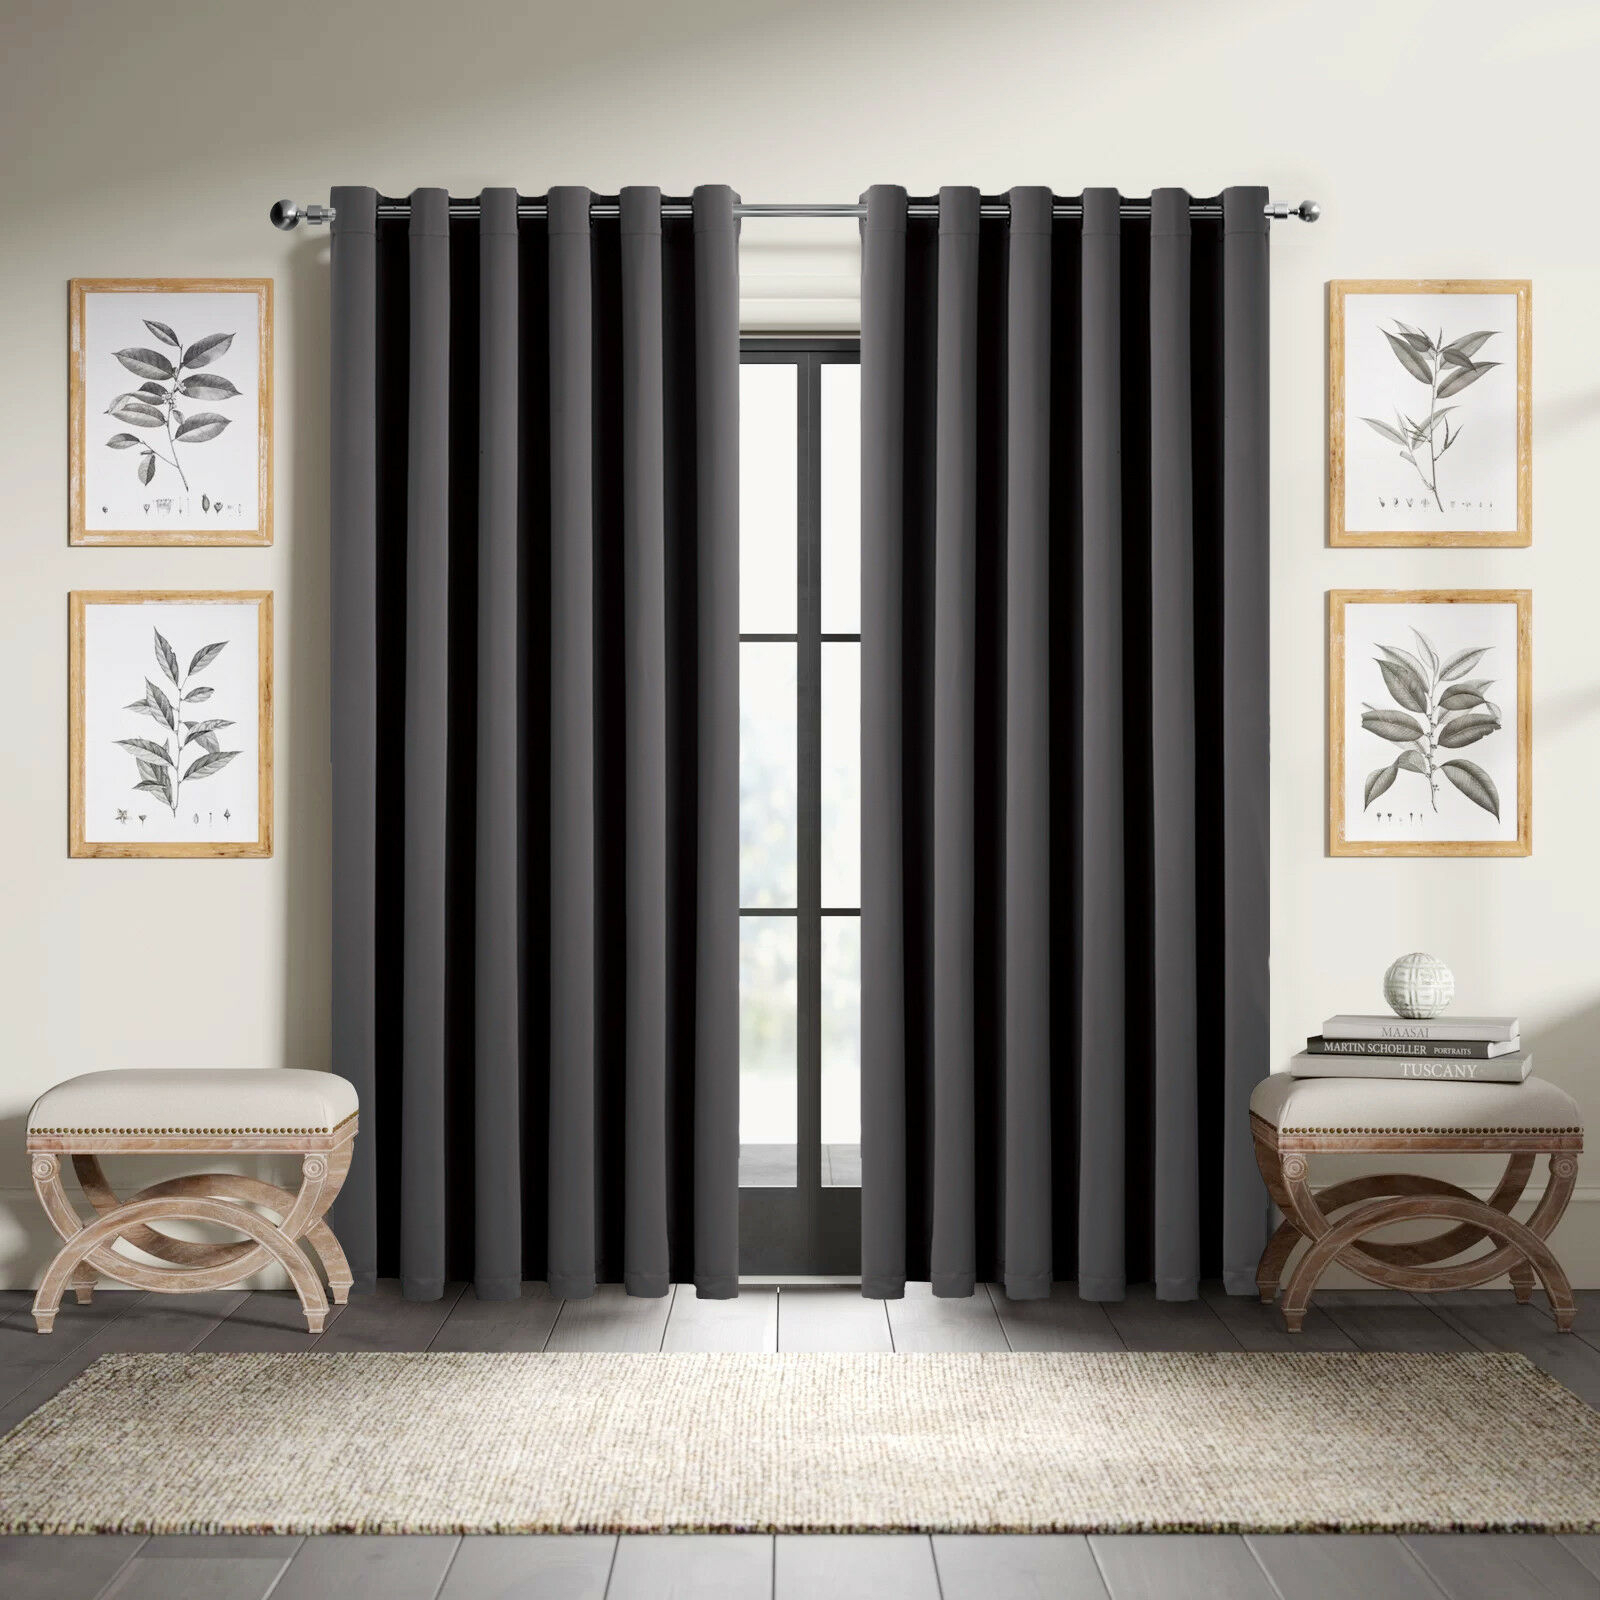 Details About Thermal Blackout Curtains Eyelet Ring Top Ready Made Grey Curtain Free Tie Backs Within Tuscan Thermal Backed Blackout Curtain Panel Pairs (View 7 of 30)